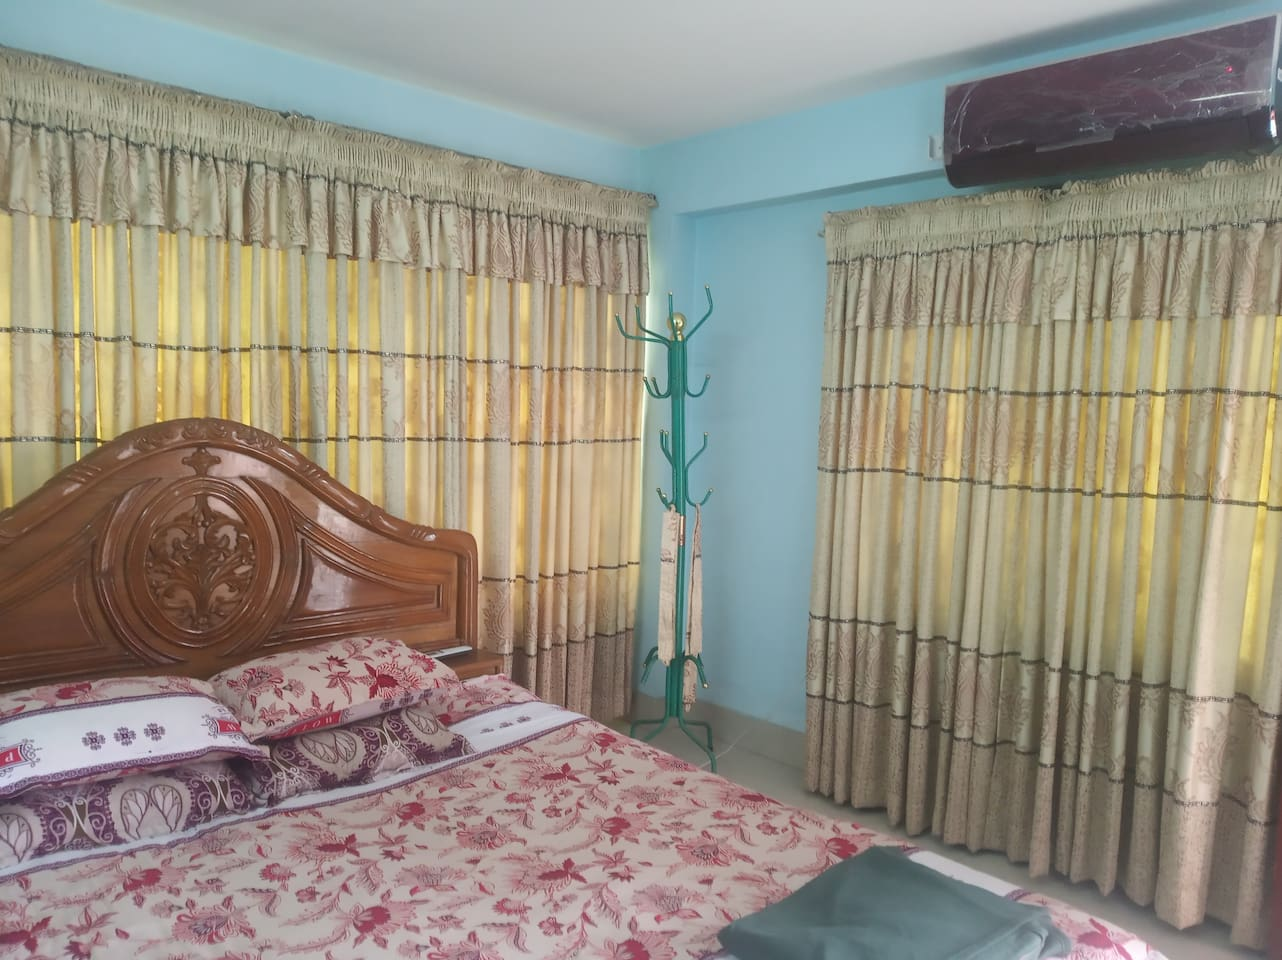 This is the master bed room having AC